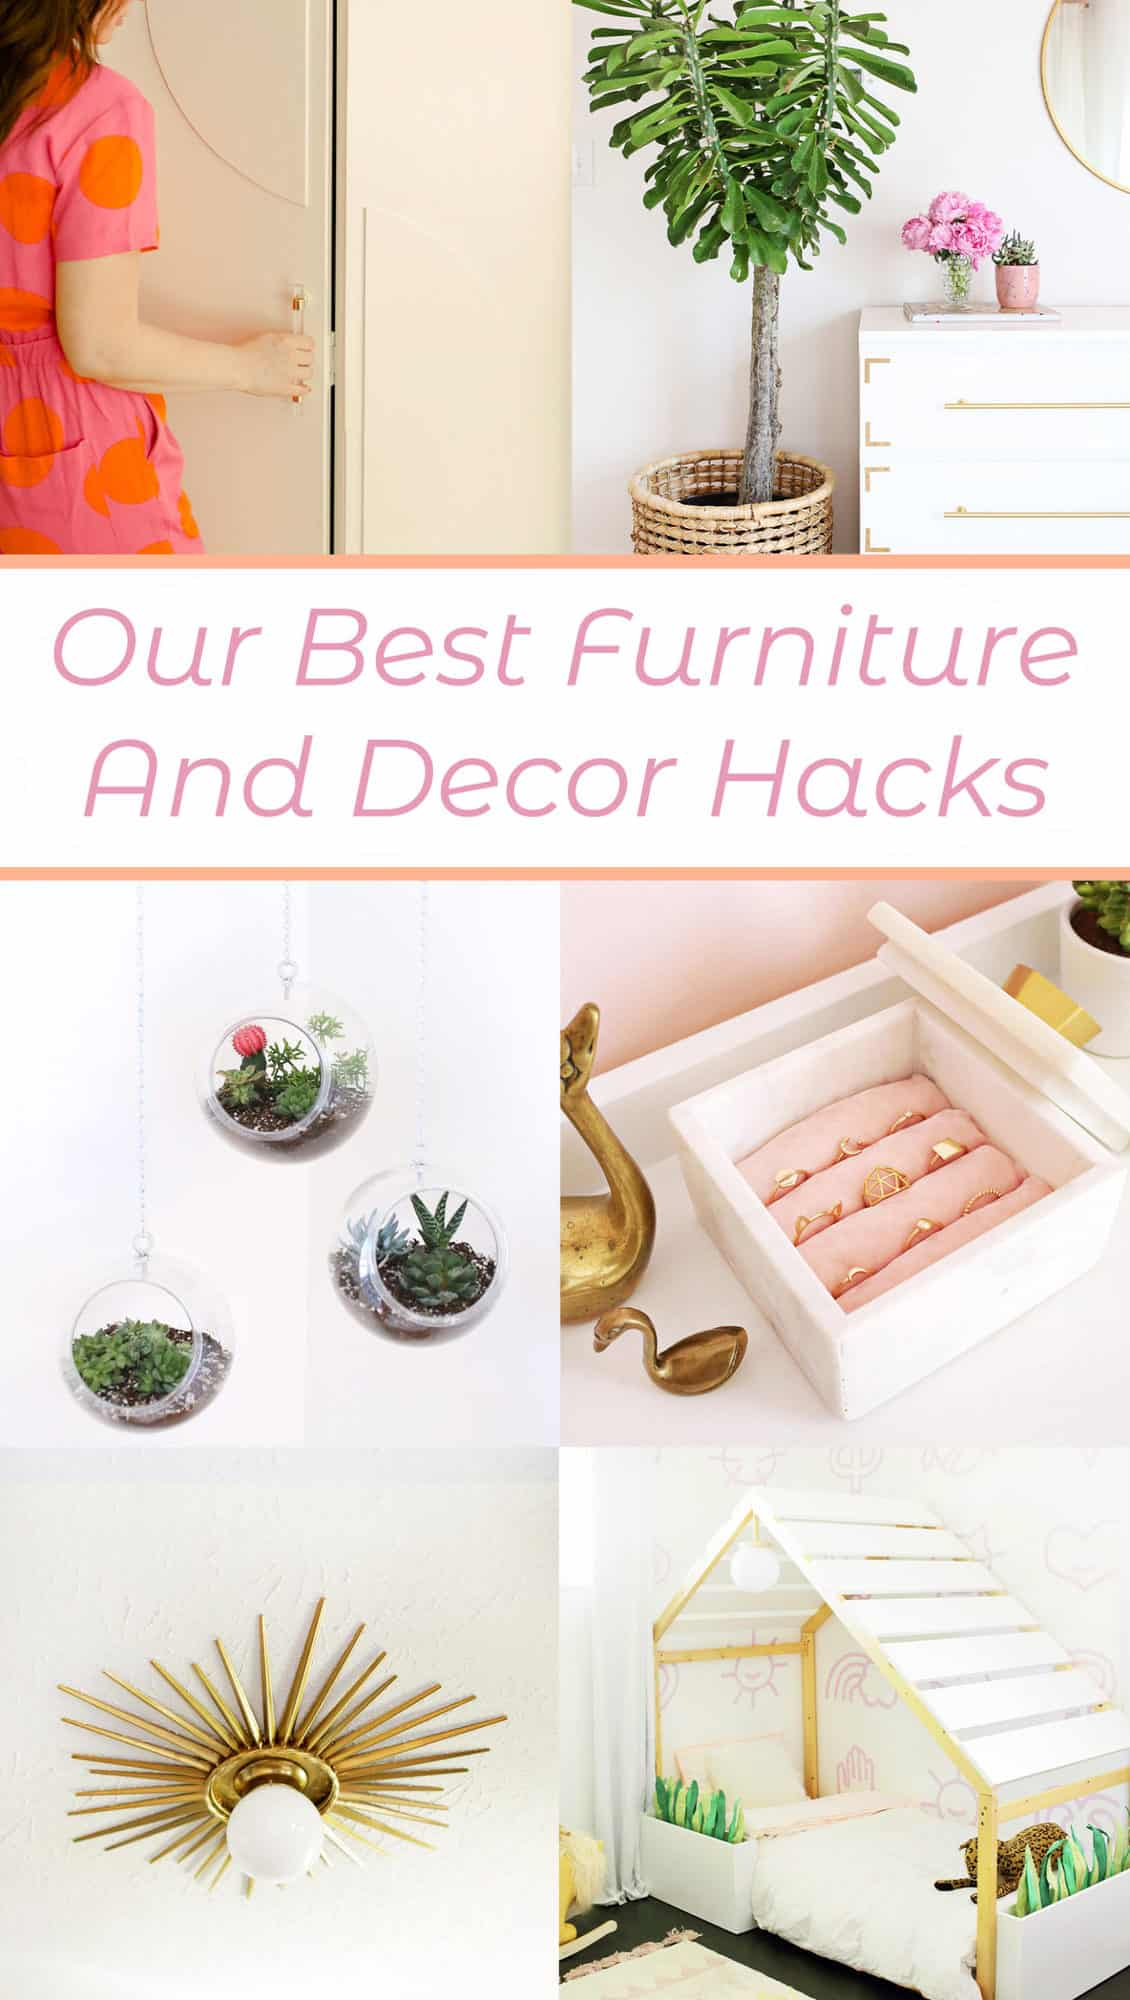 Our Best Furniture and Decor Hacks